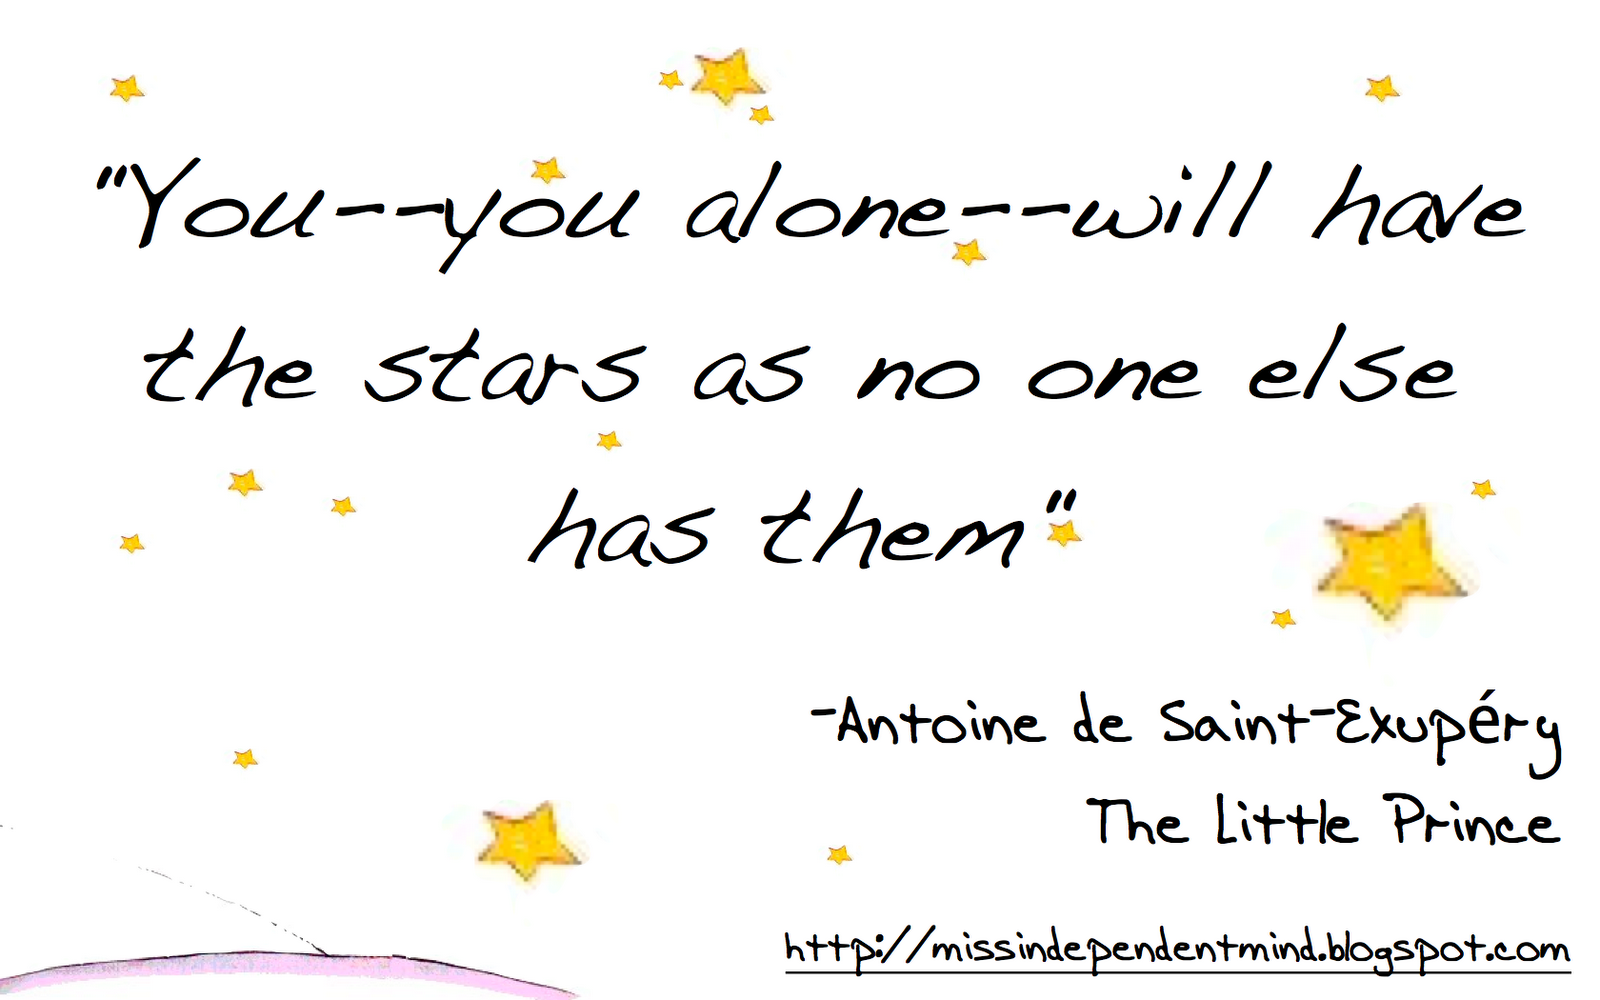 Love The Little Prince Quotes Quotesgram: Quotes From The Little Prince. QuotesGram